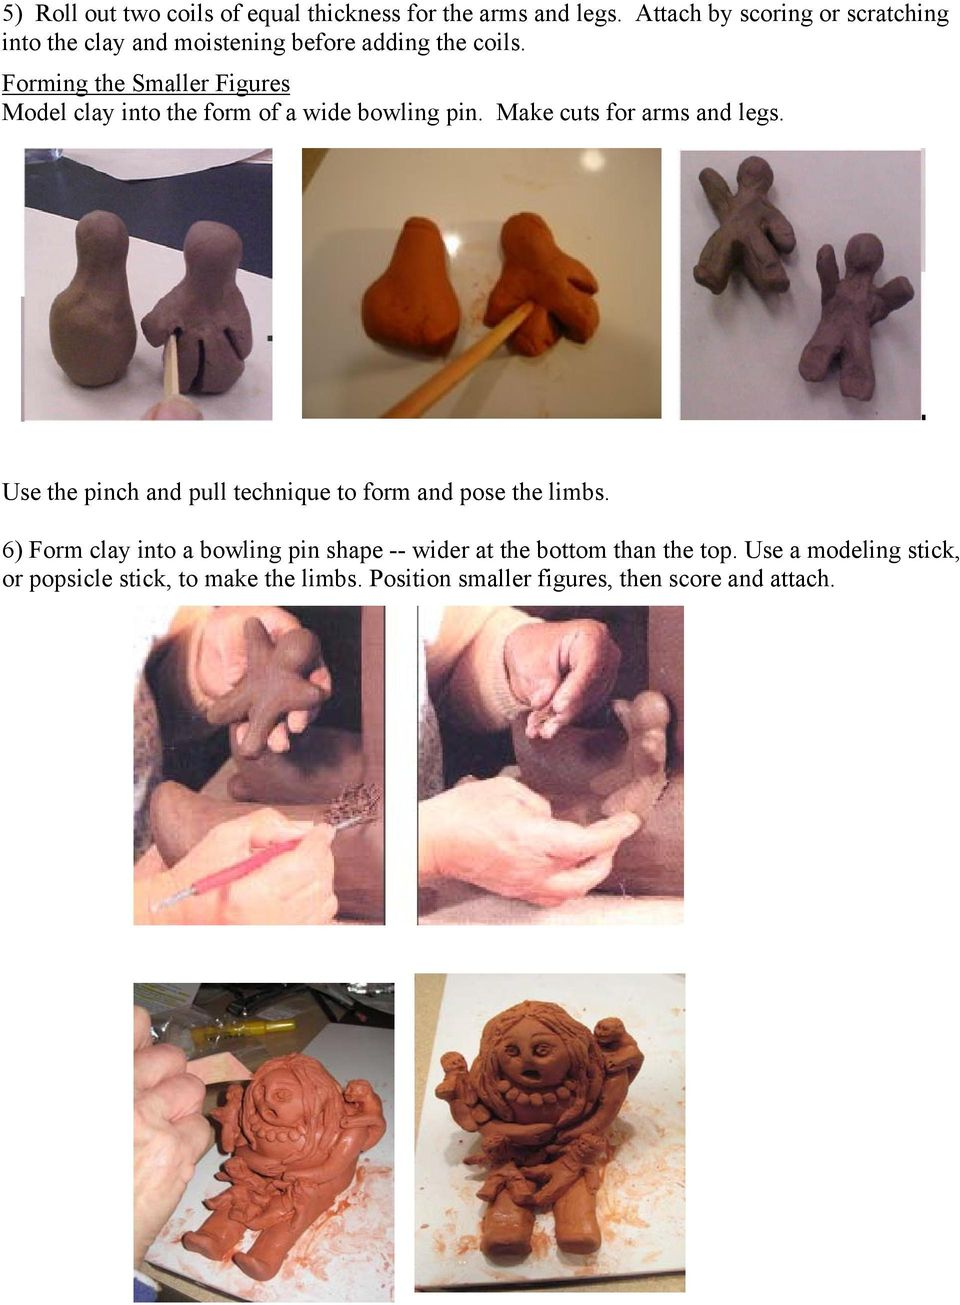 Forming the Smaller Figures Model clay into the form of a wide bowling pin. Make cuts for arms and legs.